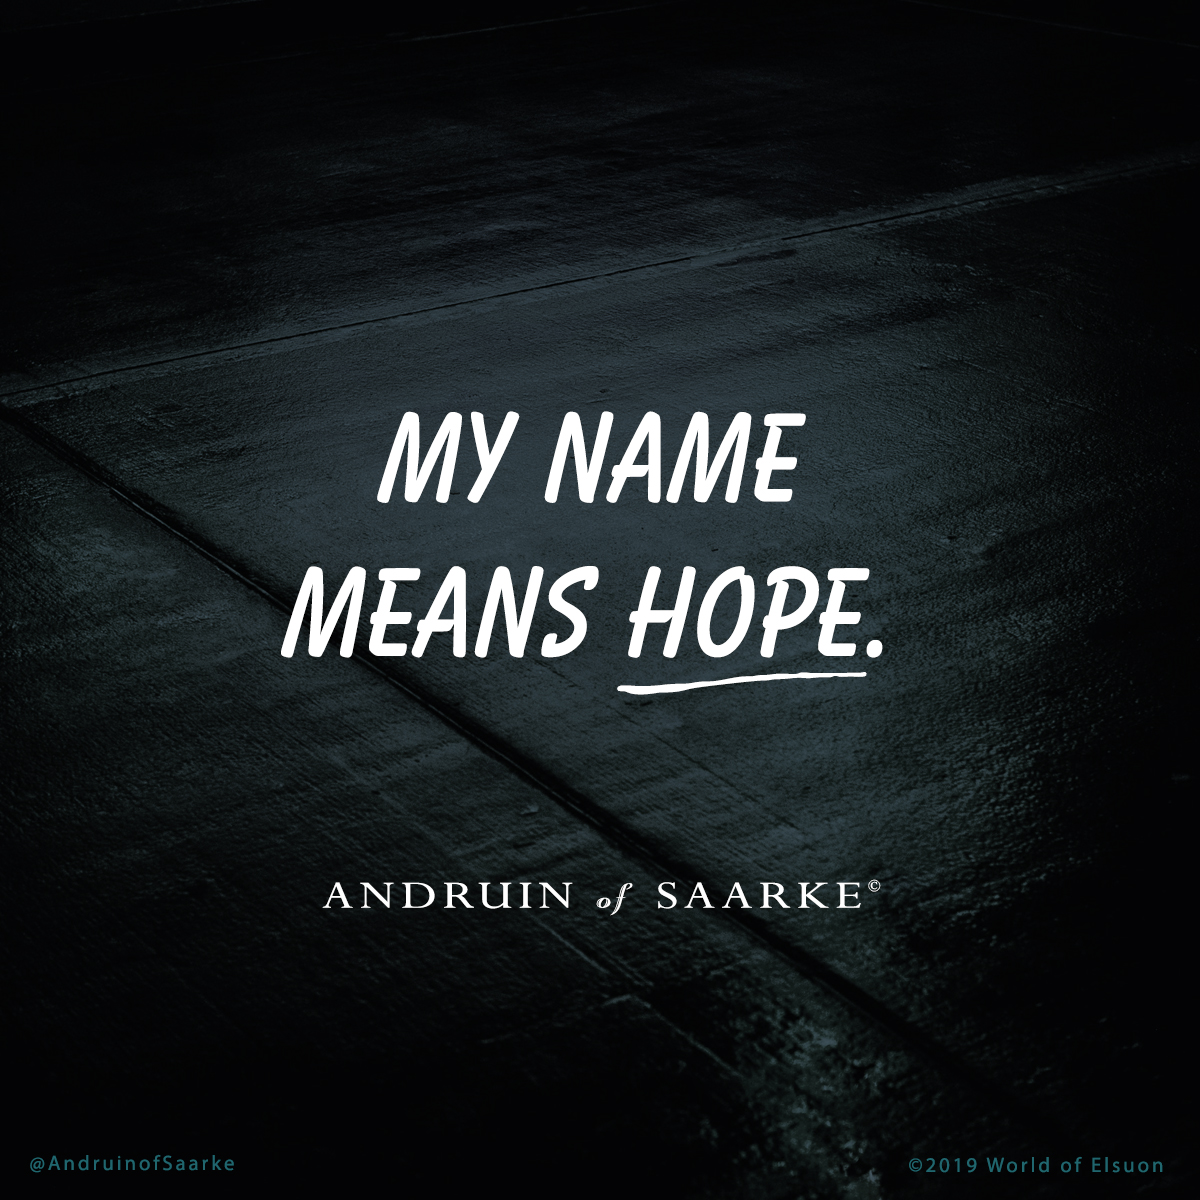 Andruin 01 - My name means hope